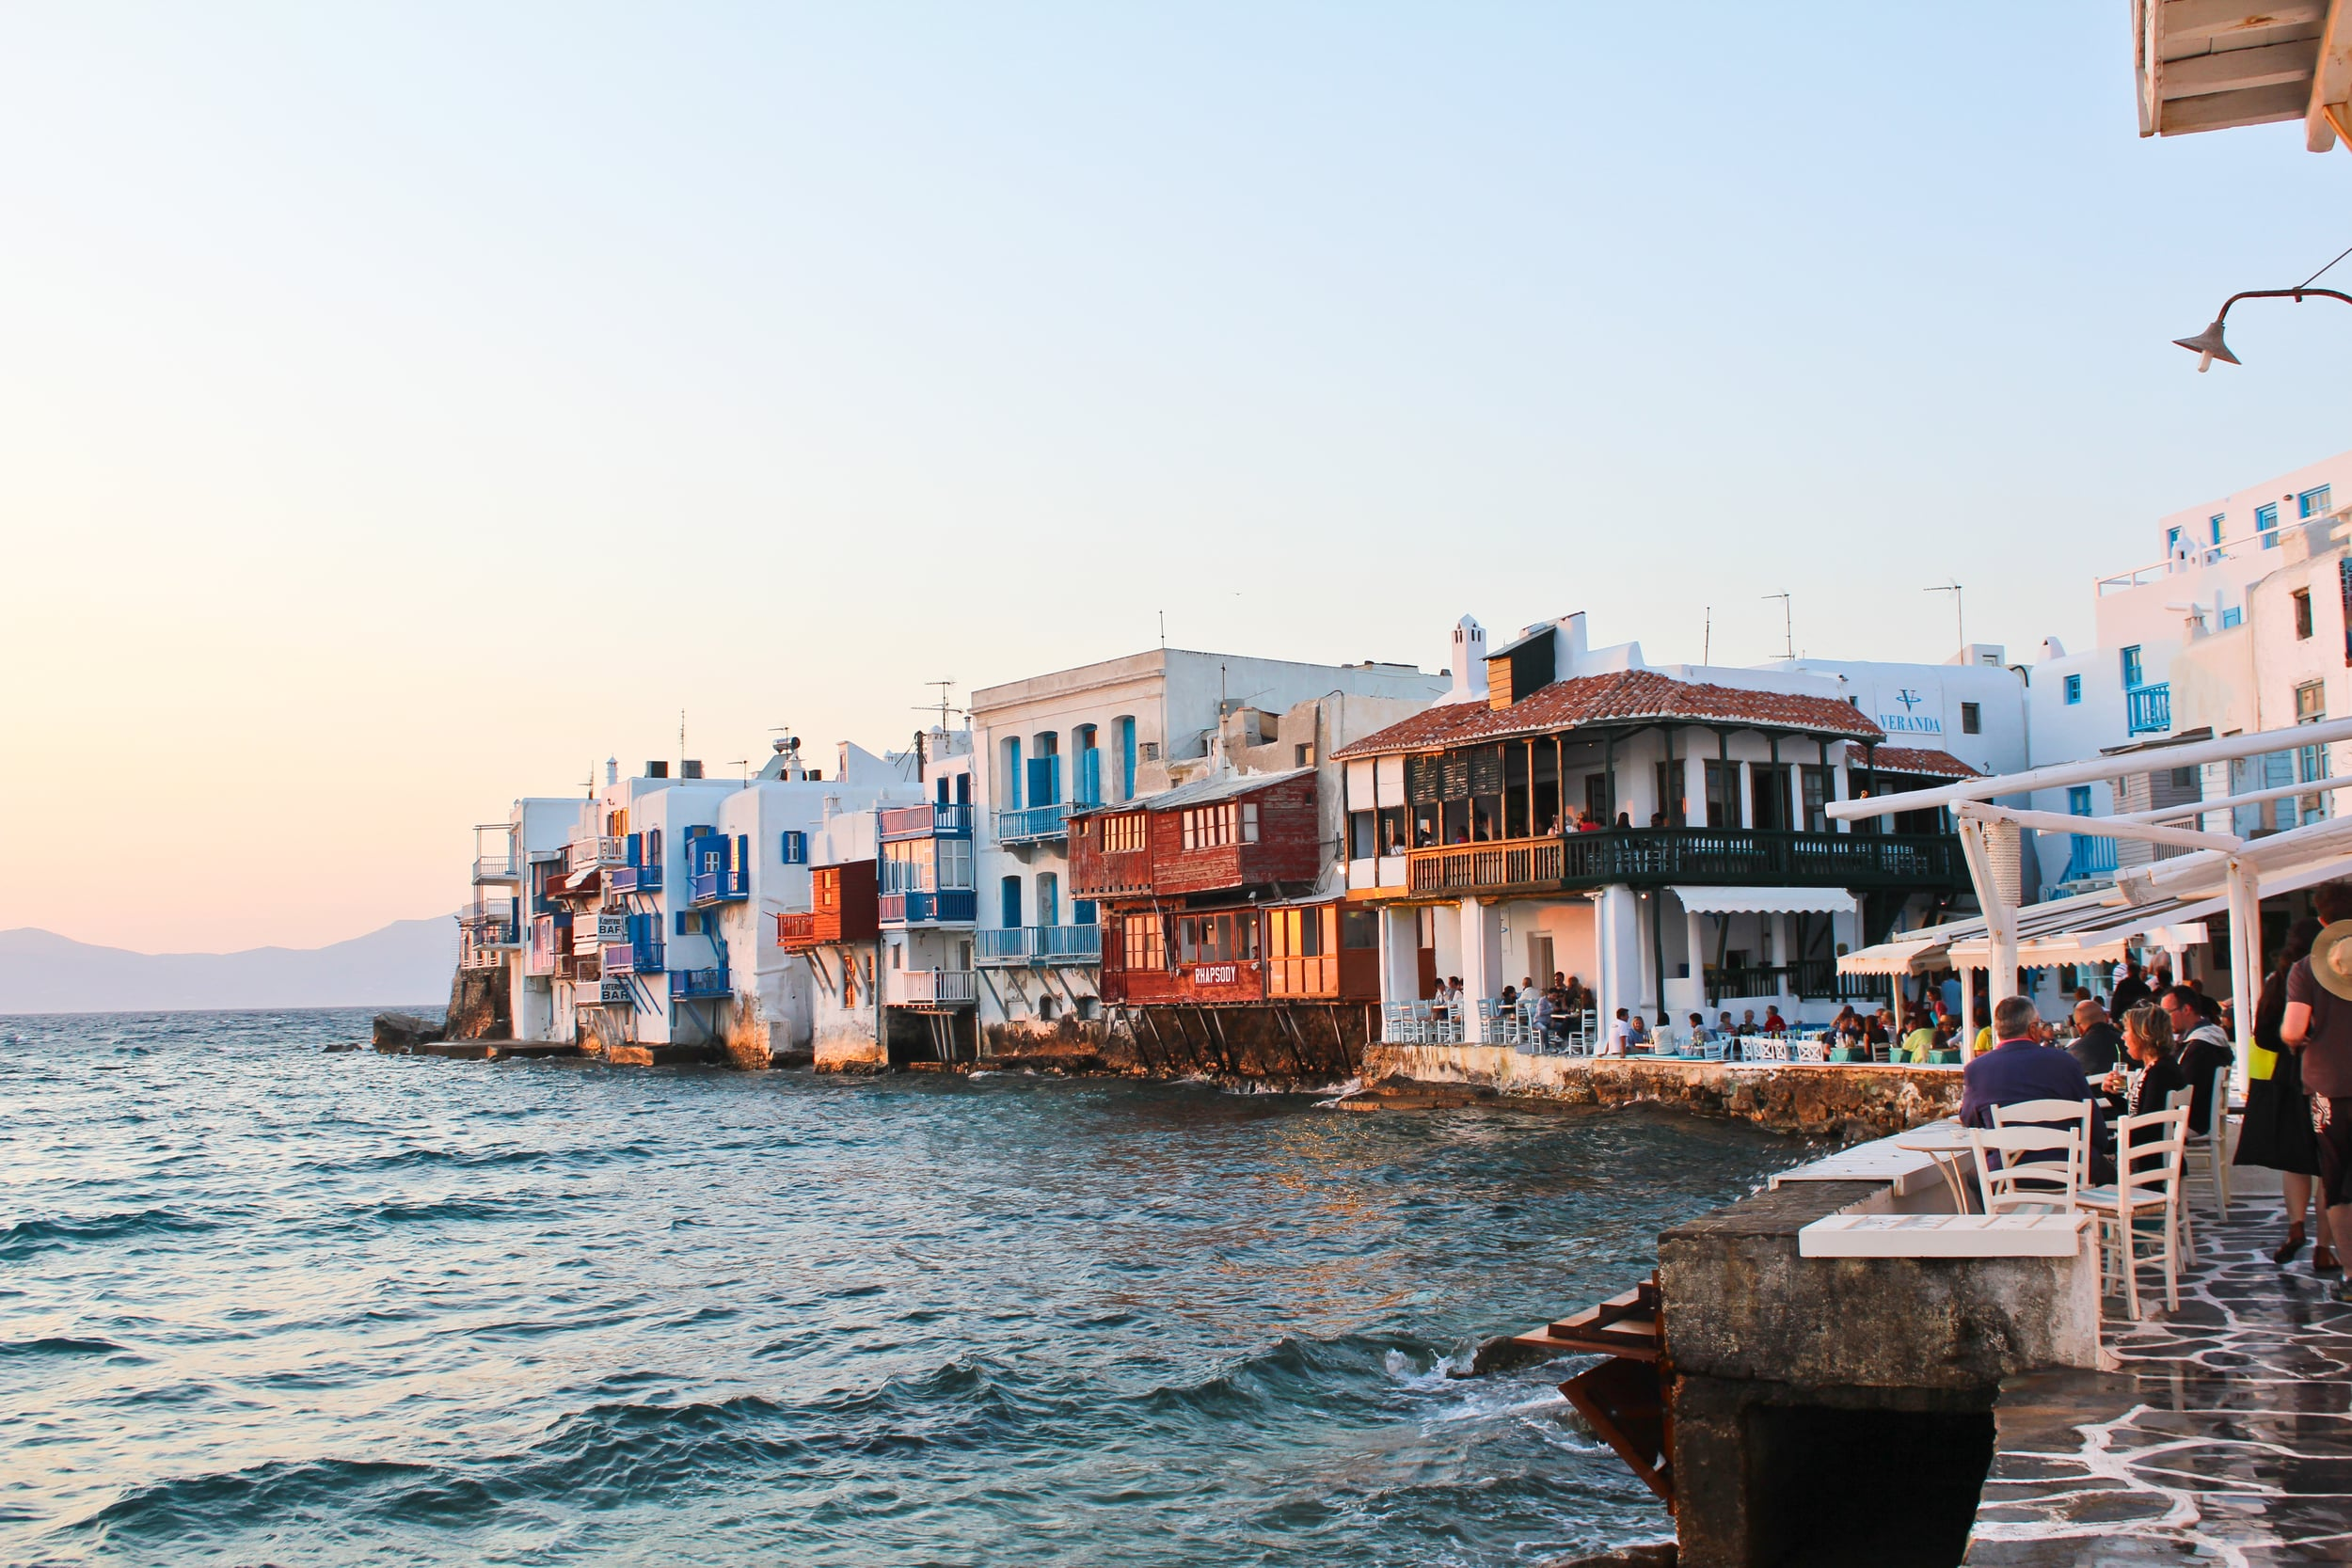 trisa-taro-mykonos-shops-waterfront-greece.jpg